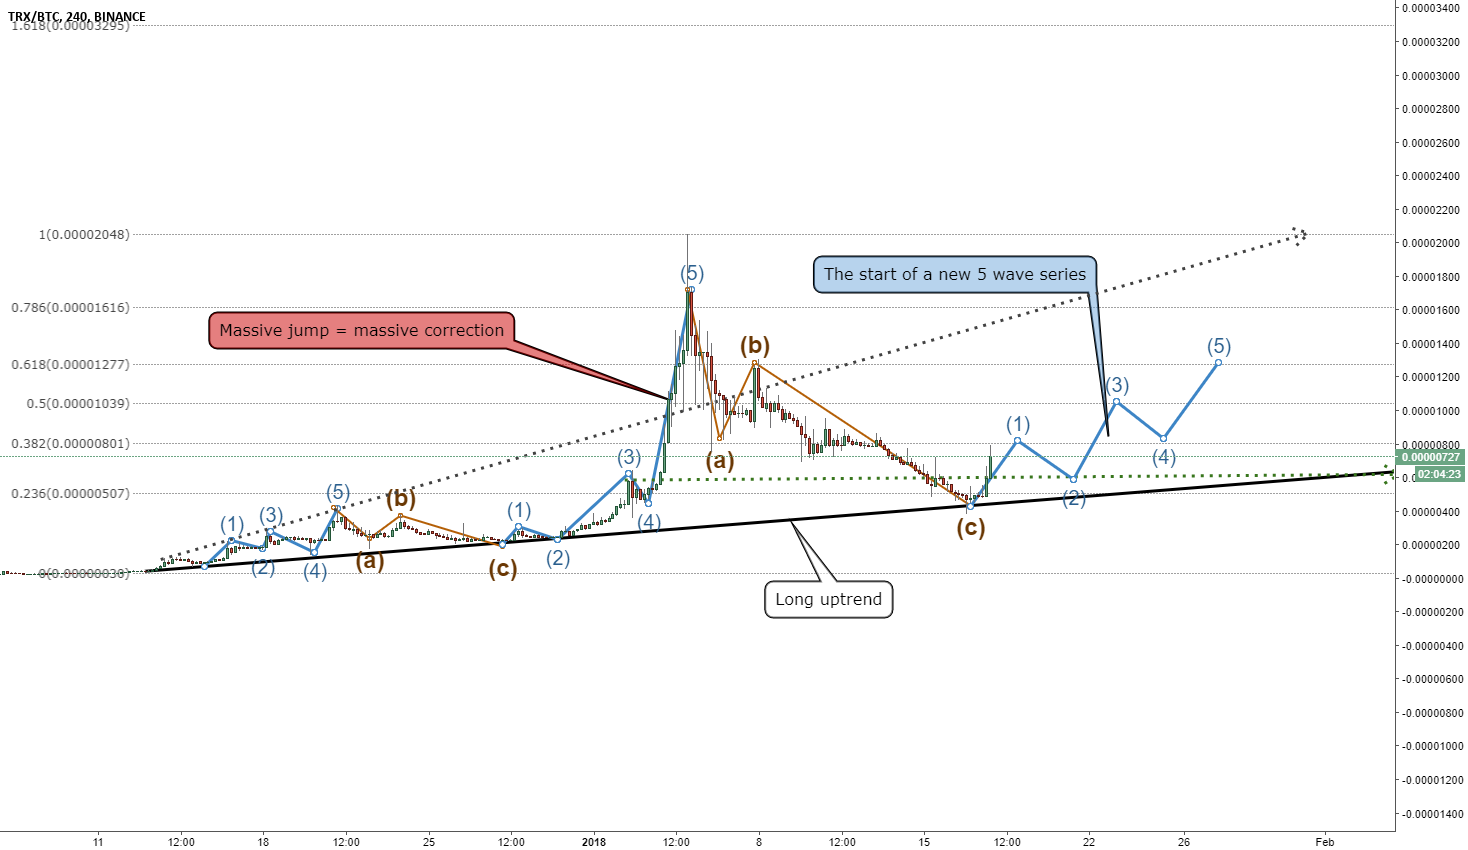 TRON(TRX) - By Elliott Waves (the start of a new run)